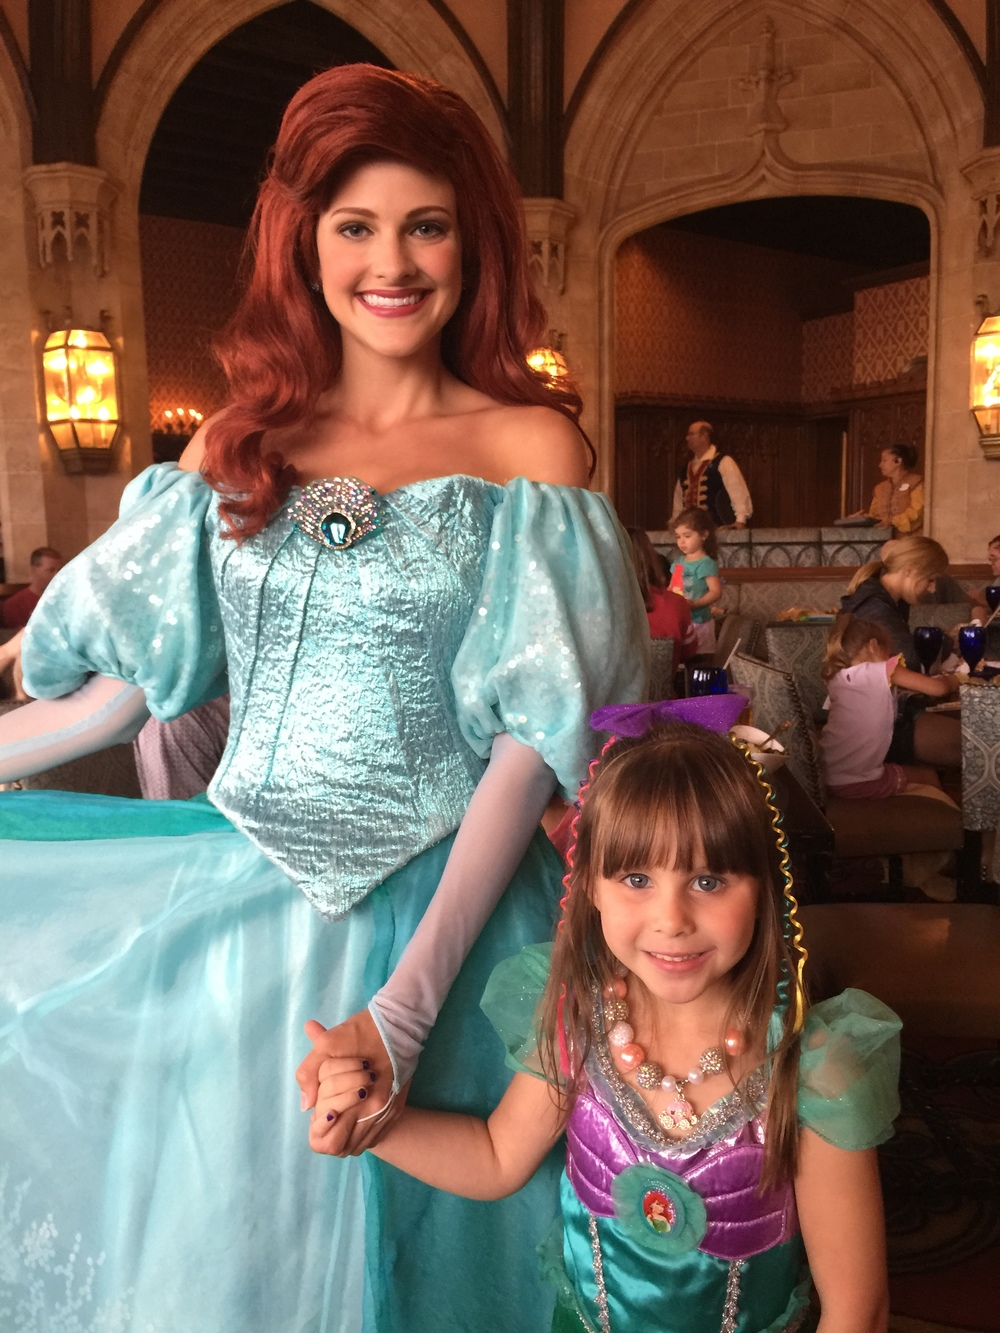 We met human Ariel at Cinderella's Royal Table. Emery was speechless!